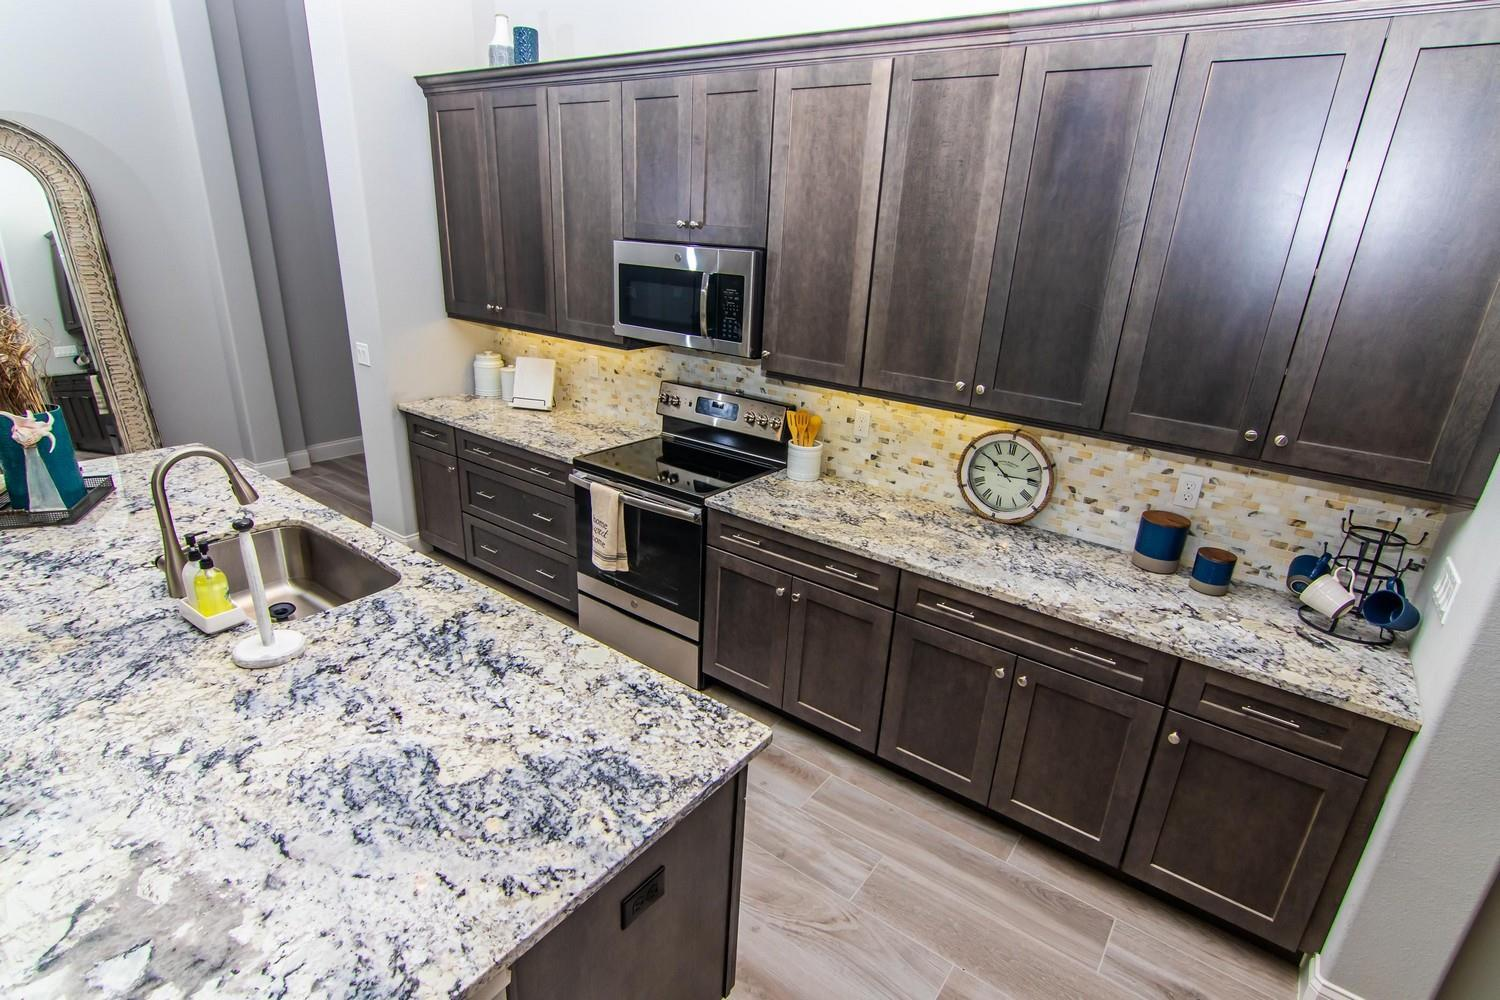 Kitchen featured in The Floridian By Adley in Daytona Beach, FL